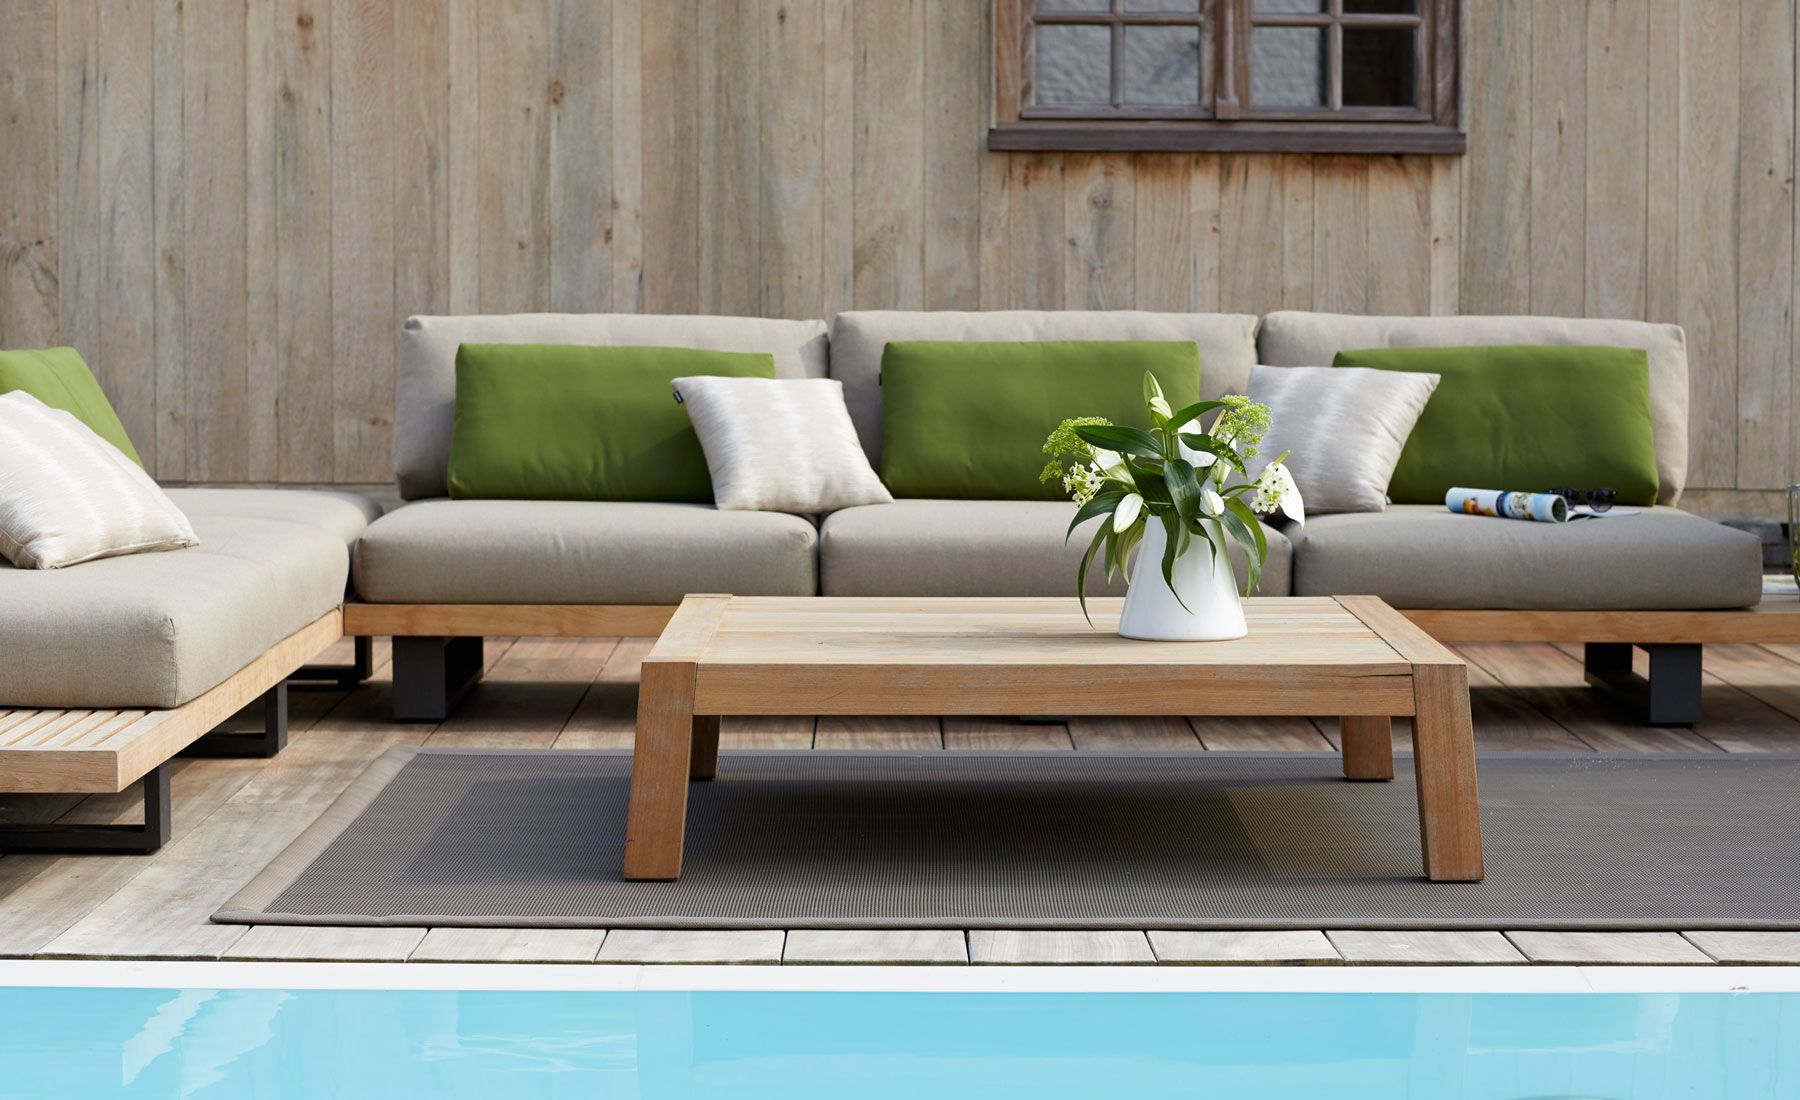 1000+ images about Woven flooring on Pinterest Outdoor fabric ... - ^